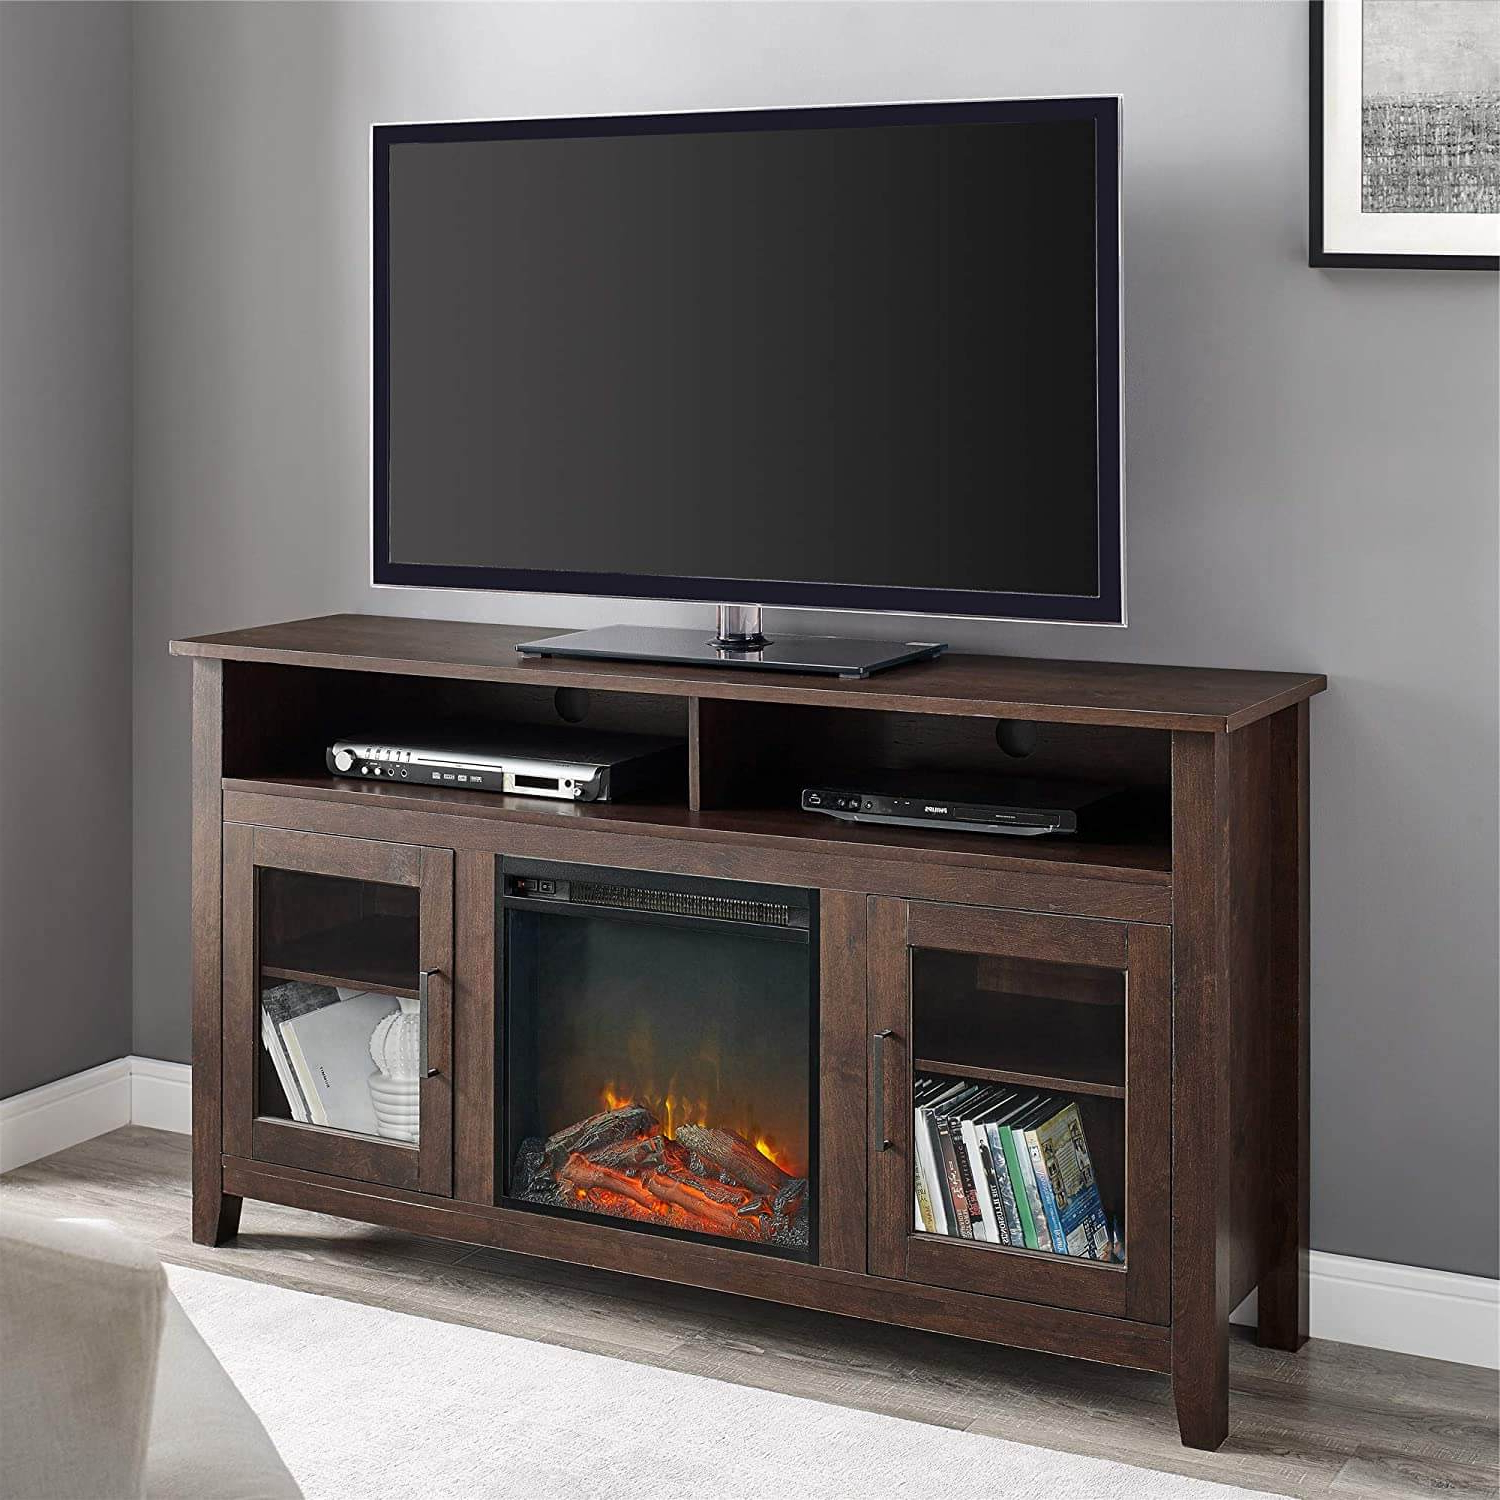 Walker Edison Rustic Wood And Glass Tall Fireplace Stand With Widely Used Walker Edison Farmhouse Tv Stands With Storage Cabinet Doors And Shelves (View 10 of 10)